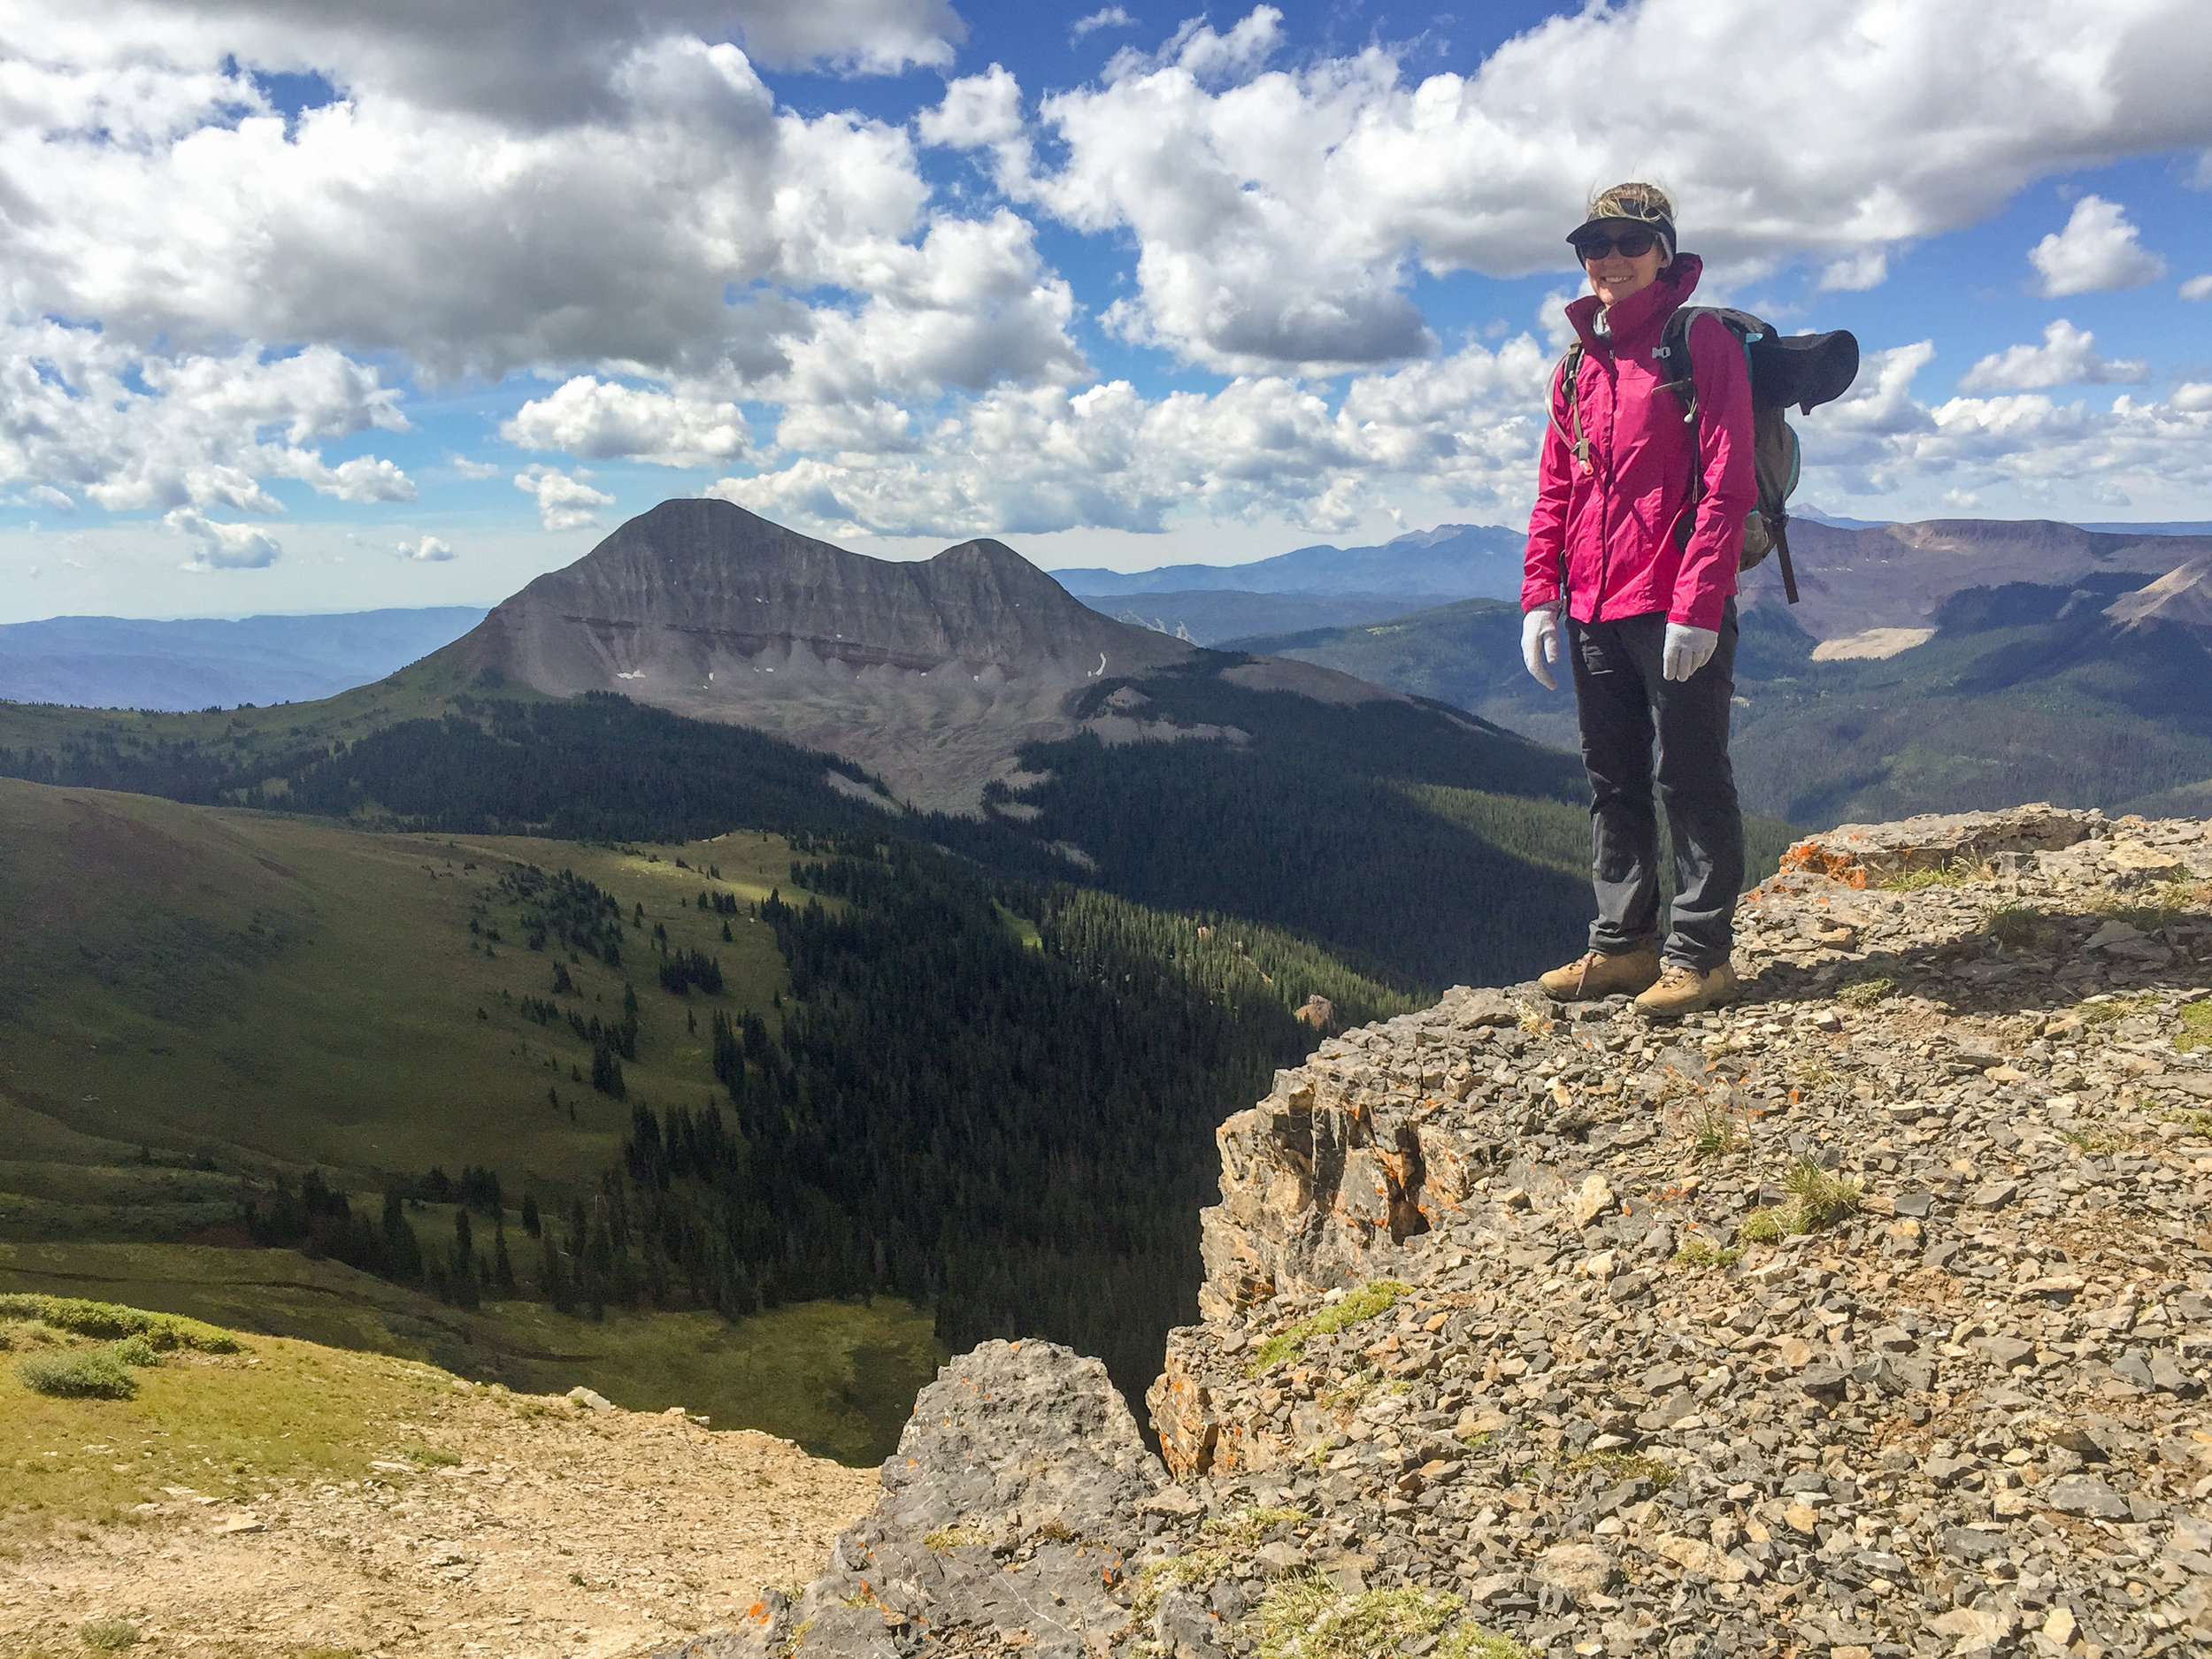 Jane Marie on Jura Knob with Engineer Mountain in the background